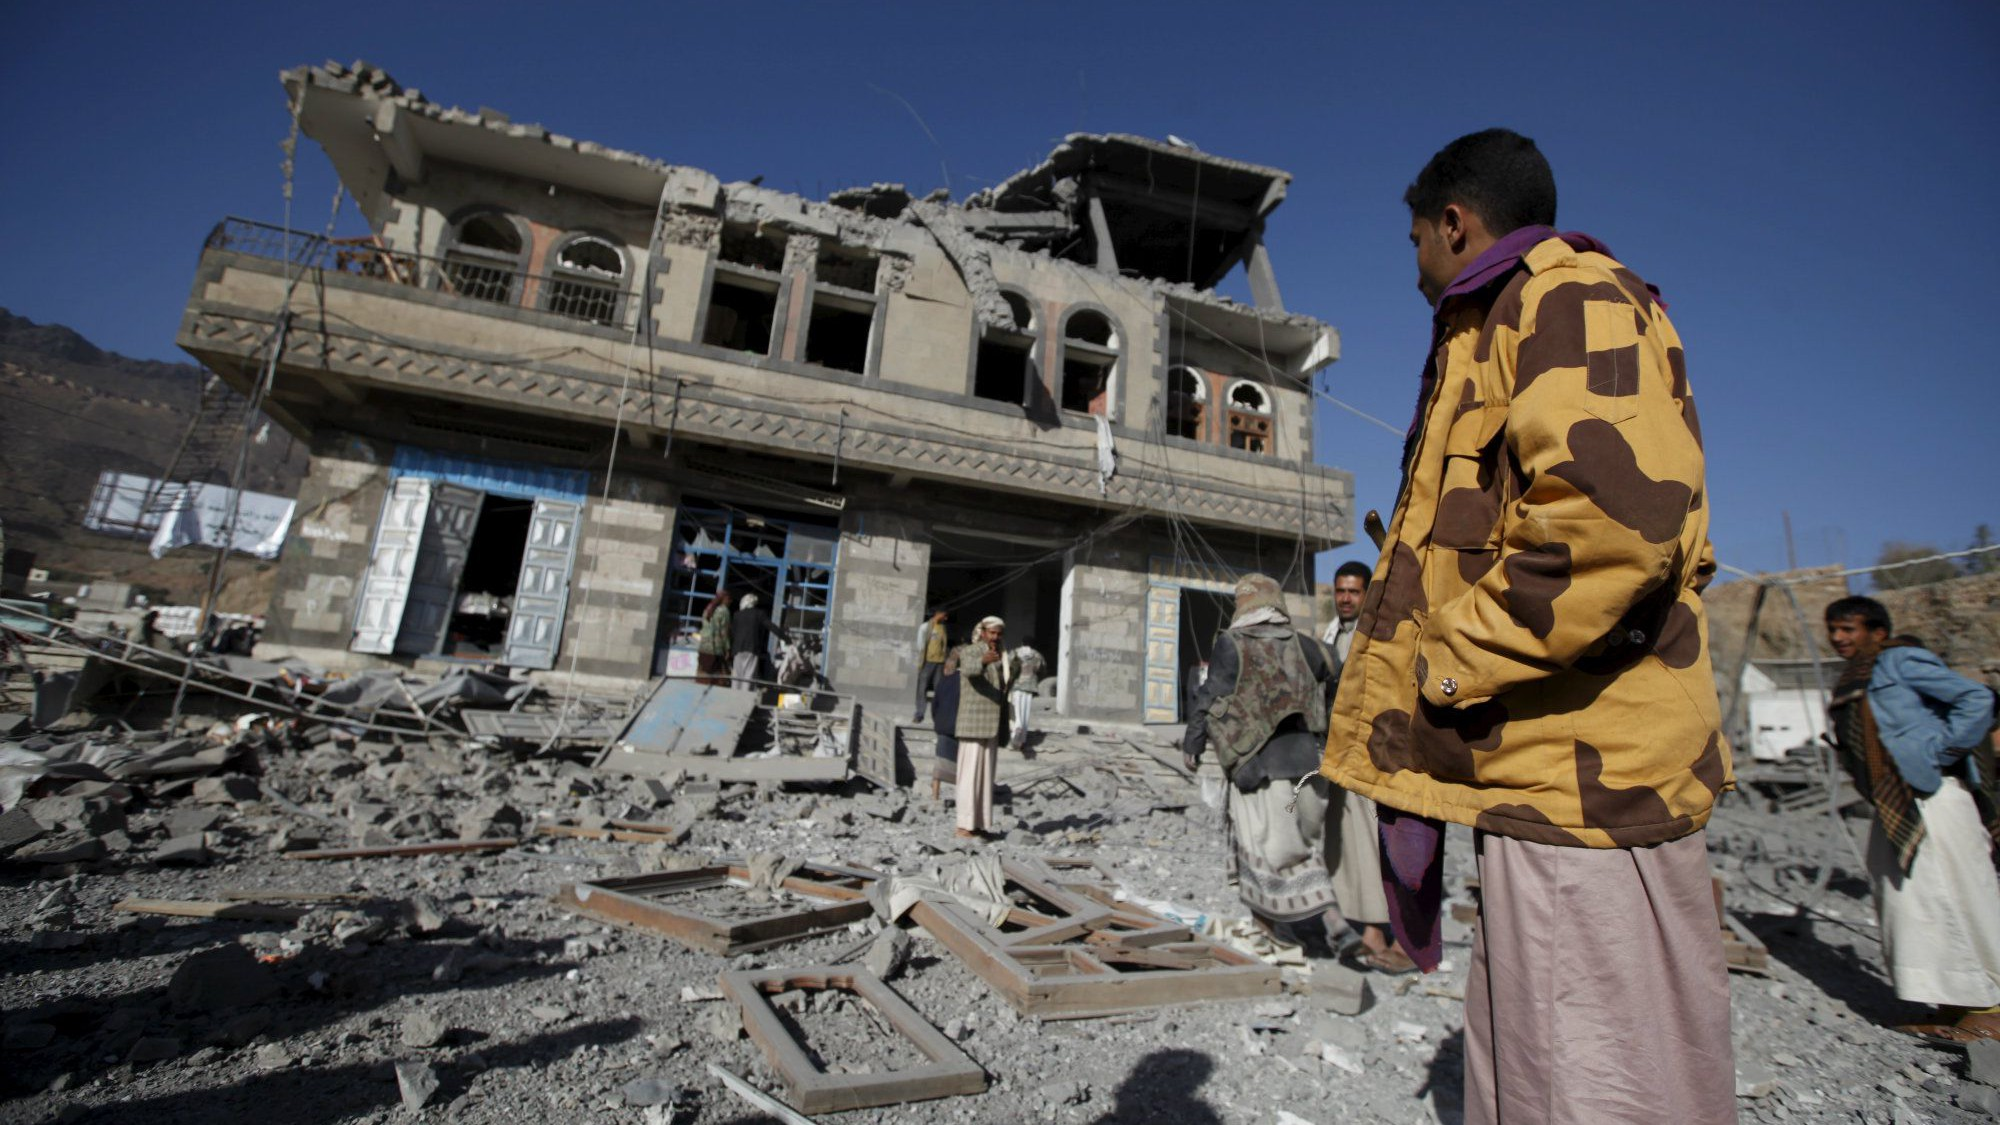 People look at a damaged building at the site of a Saudi-led air strike in Yemen's capital Sanaa January 4, 2016.